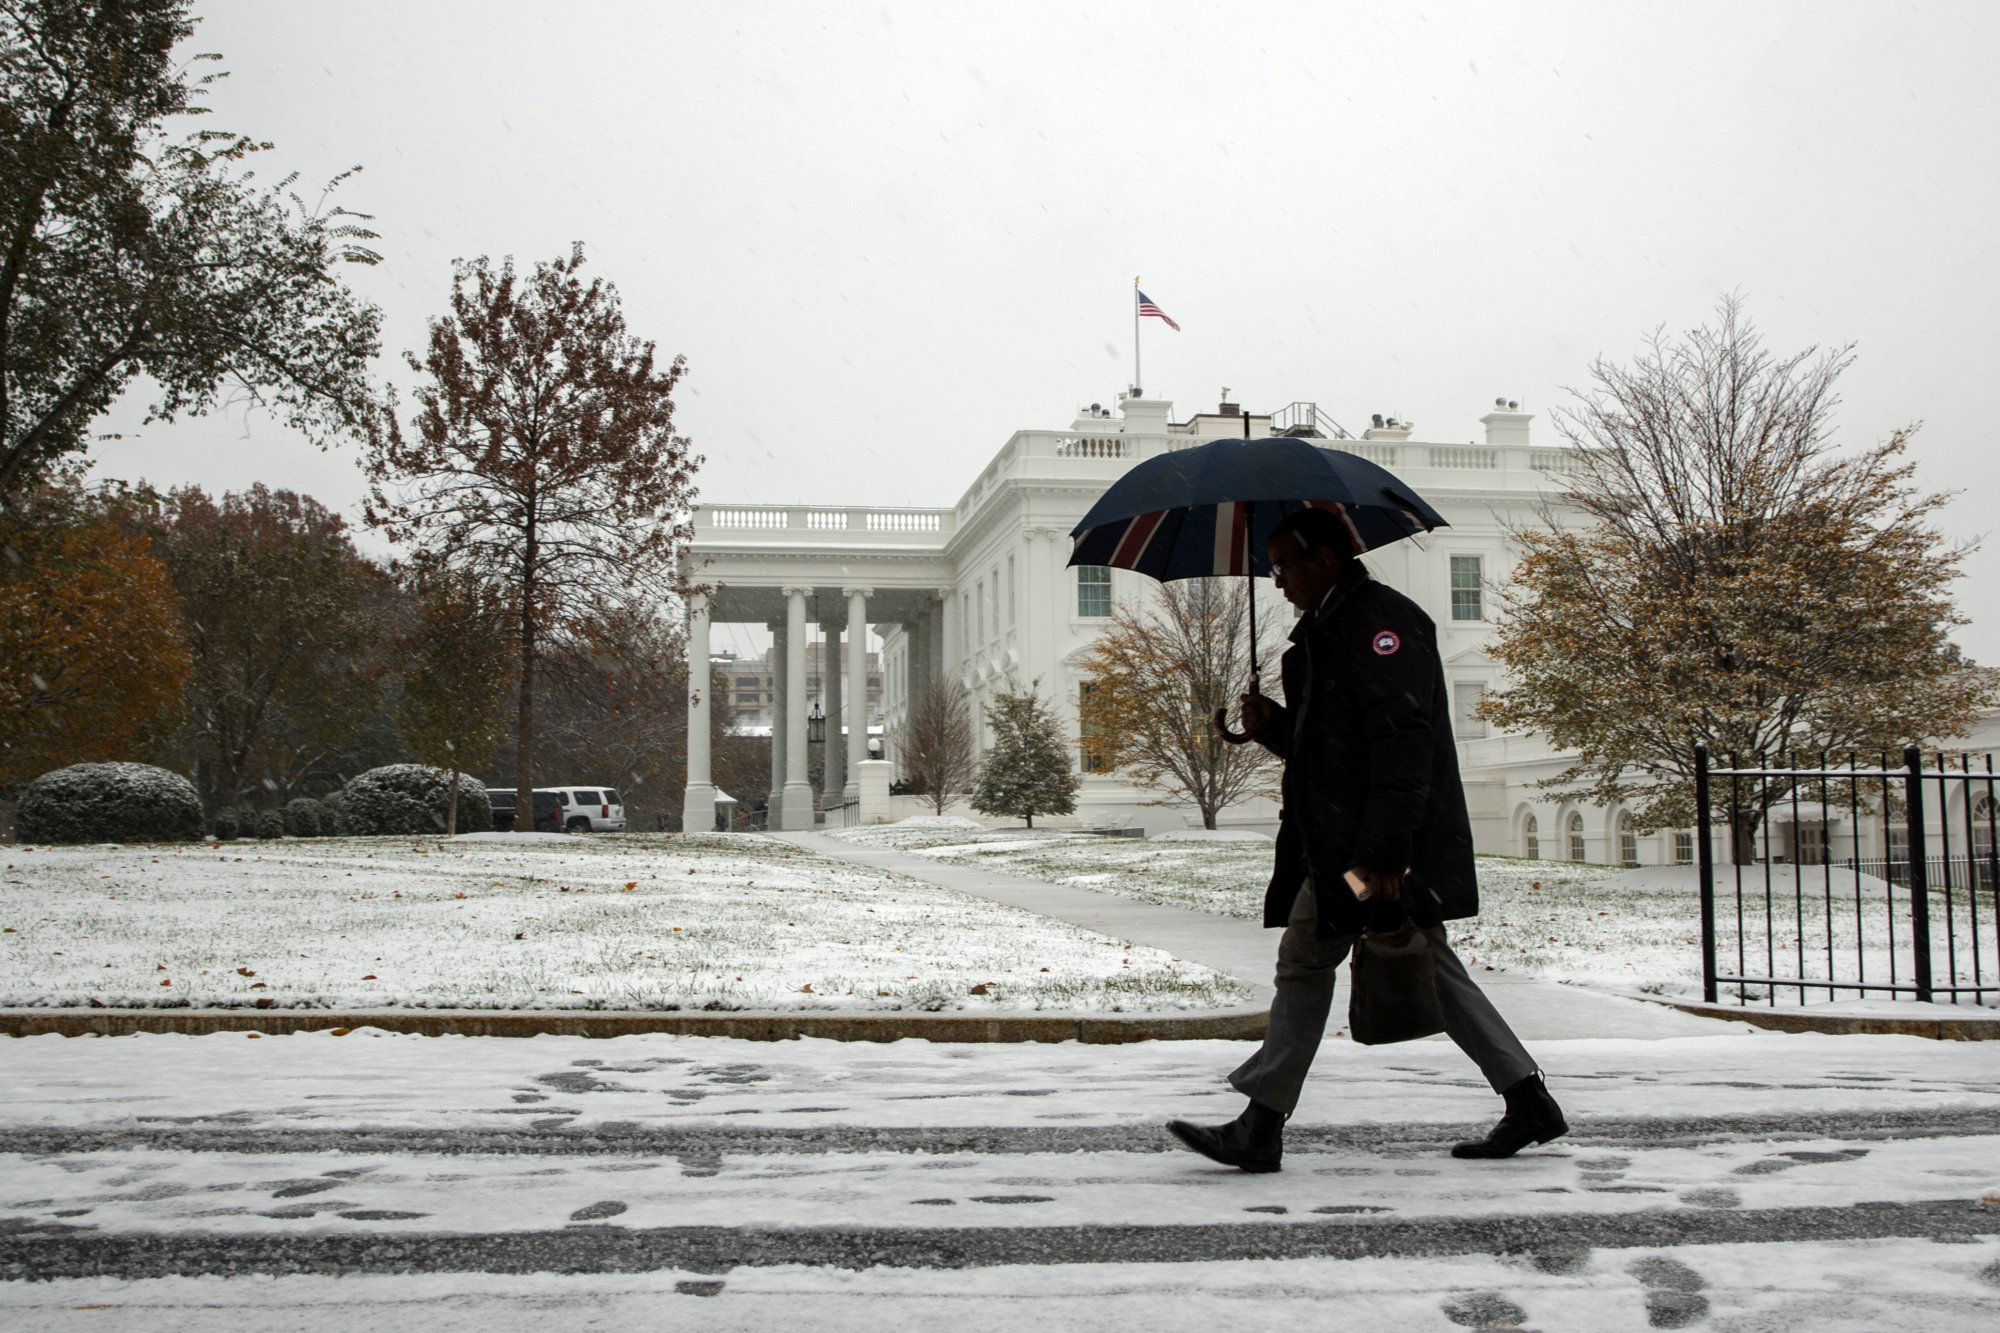 Snow falls on the White House, Thursday, Nov. 15, 2018, in Washington. (AP Photo/Evan Vucci)